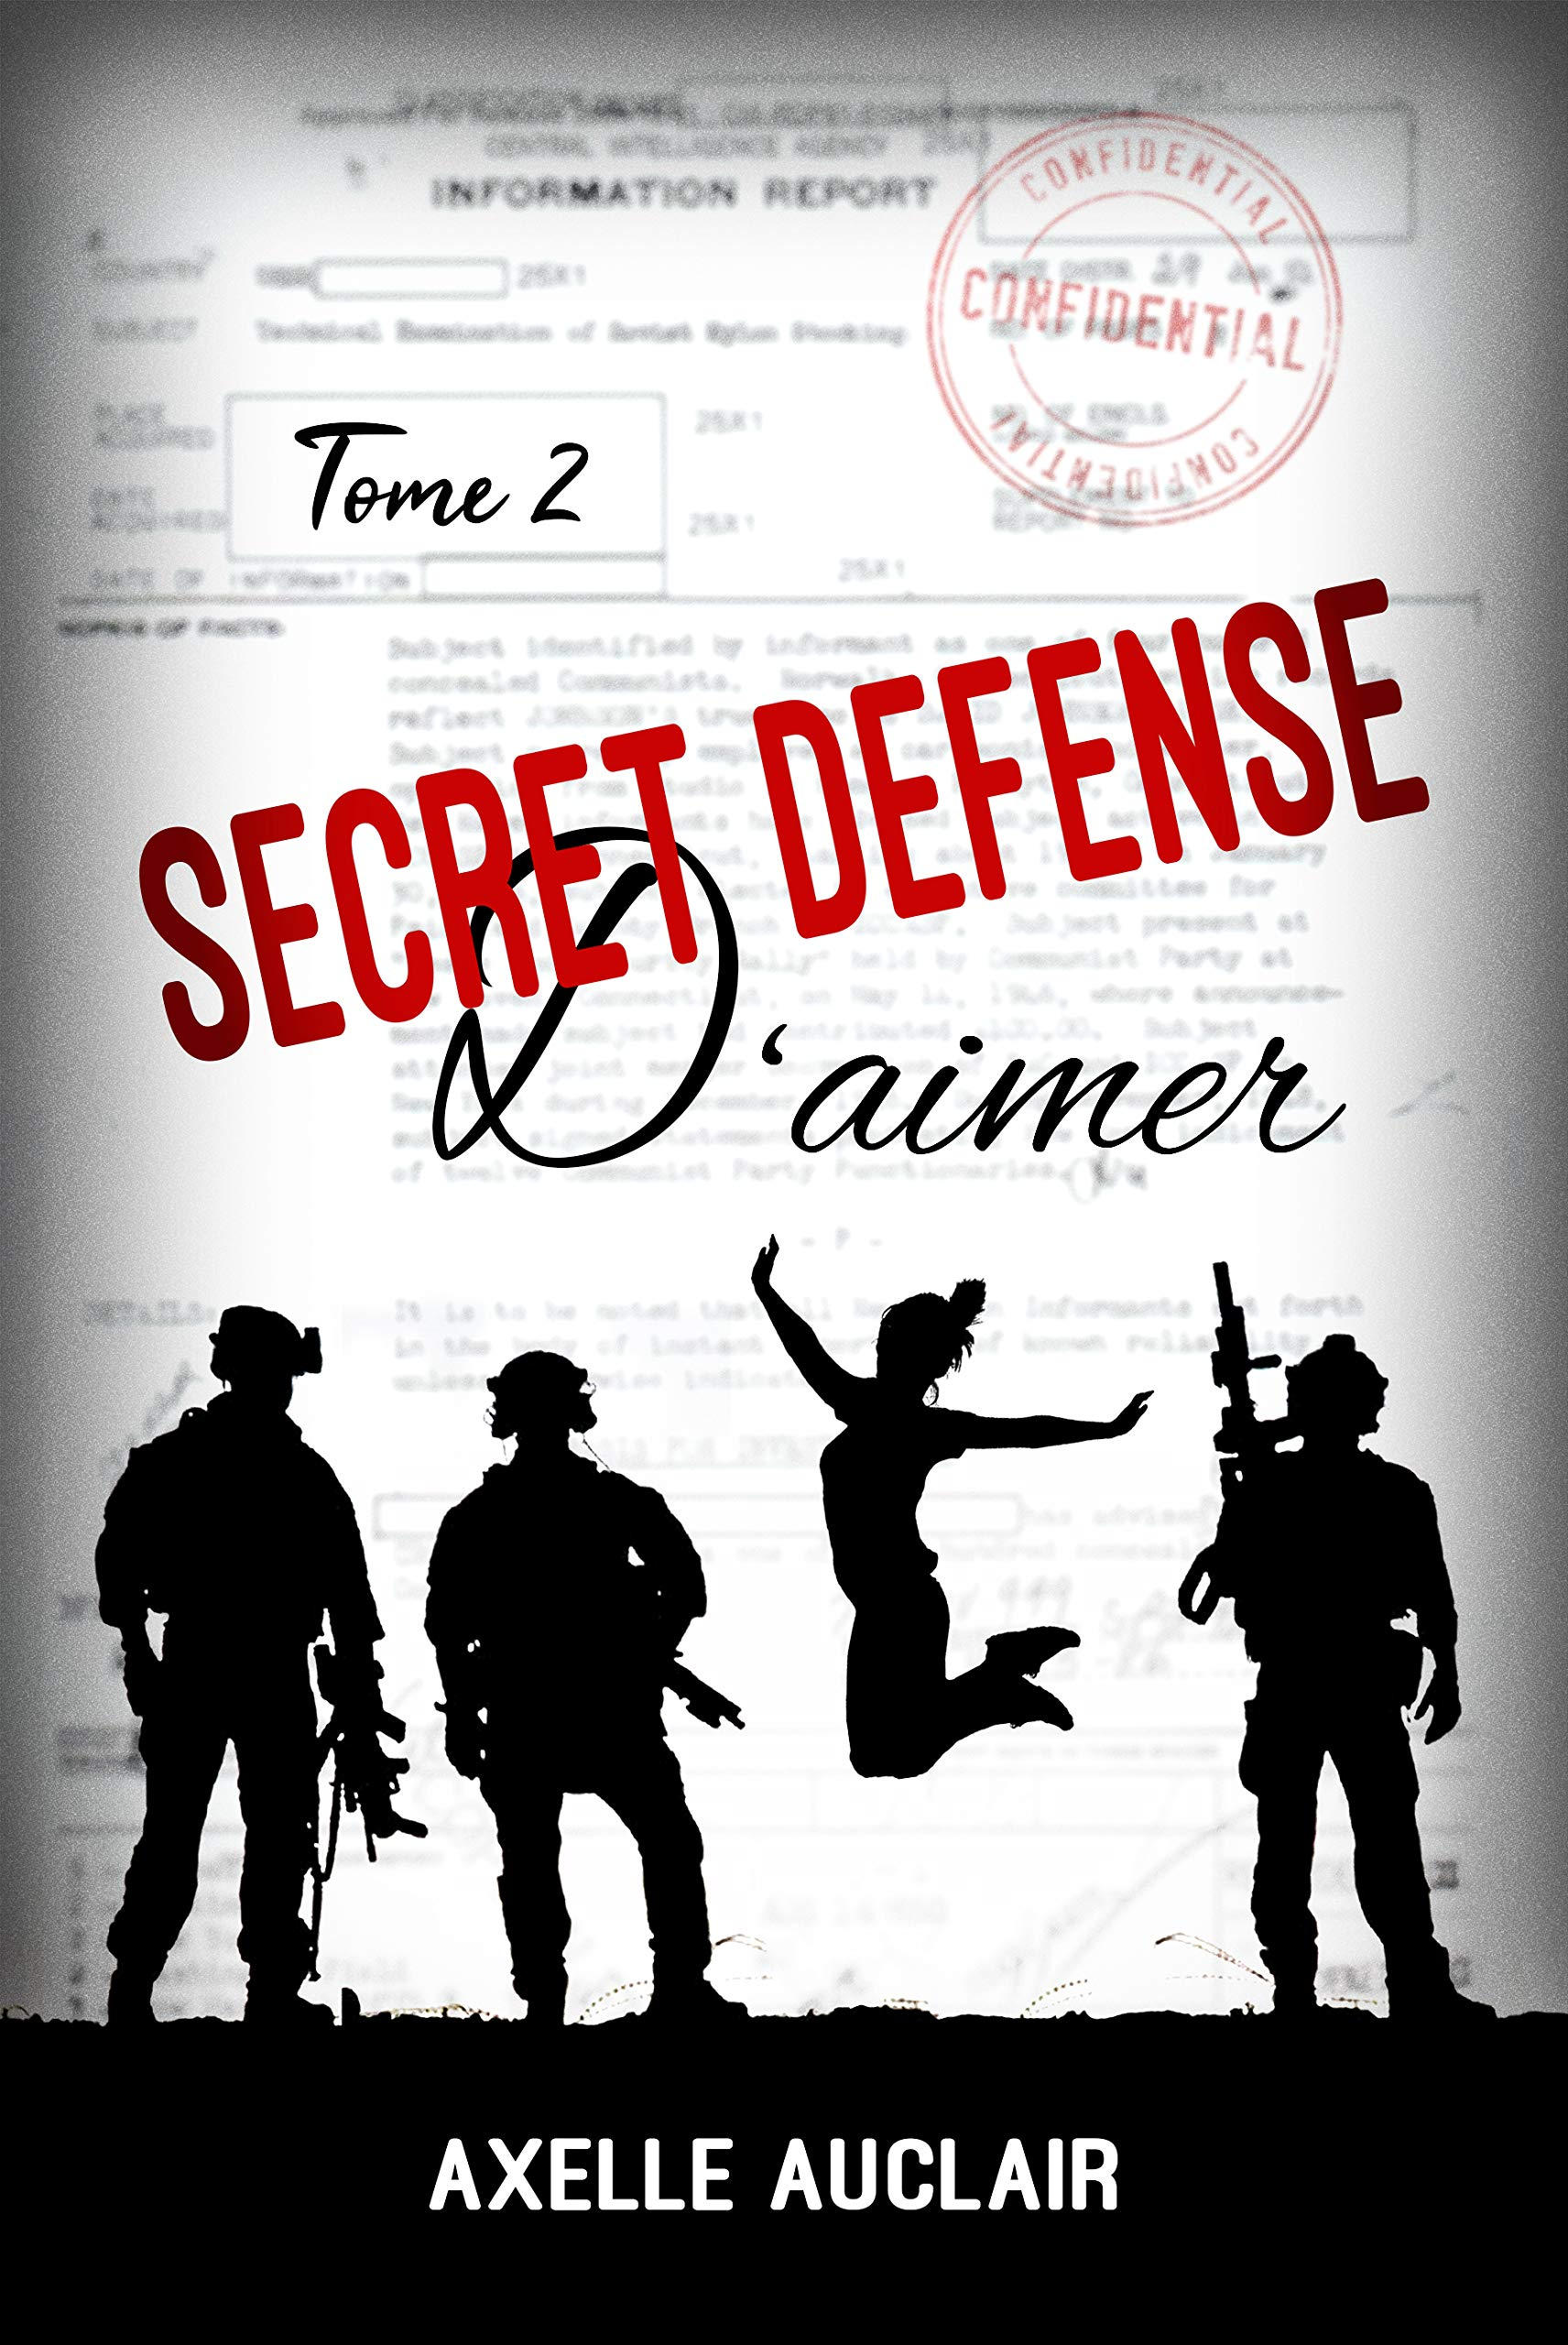 SECRET DÉFENSE d'aimer - Tome 2 por Axelle Auclair